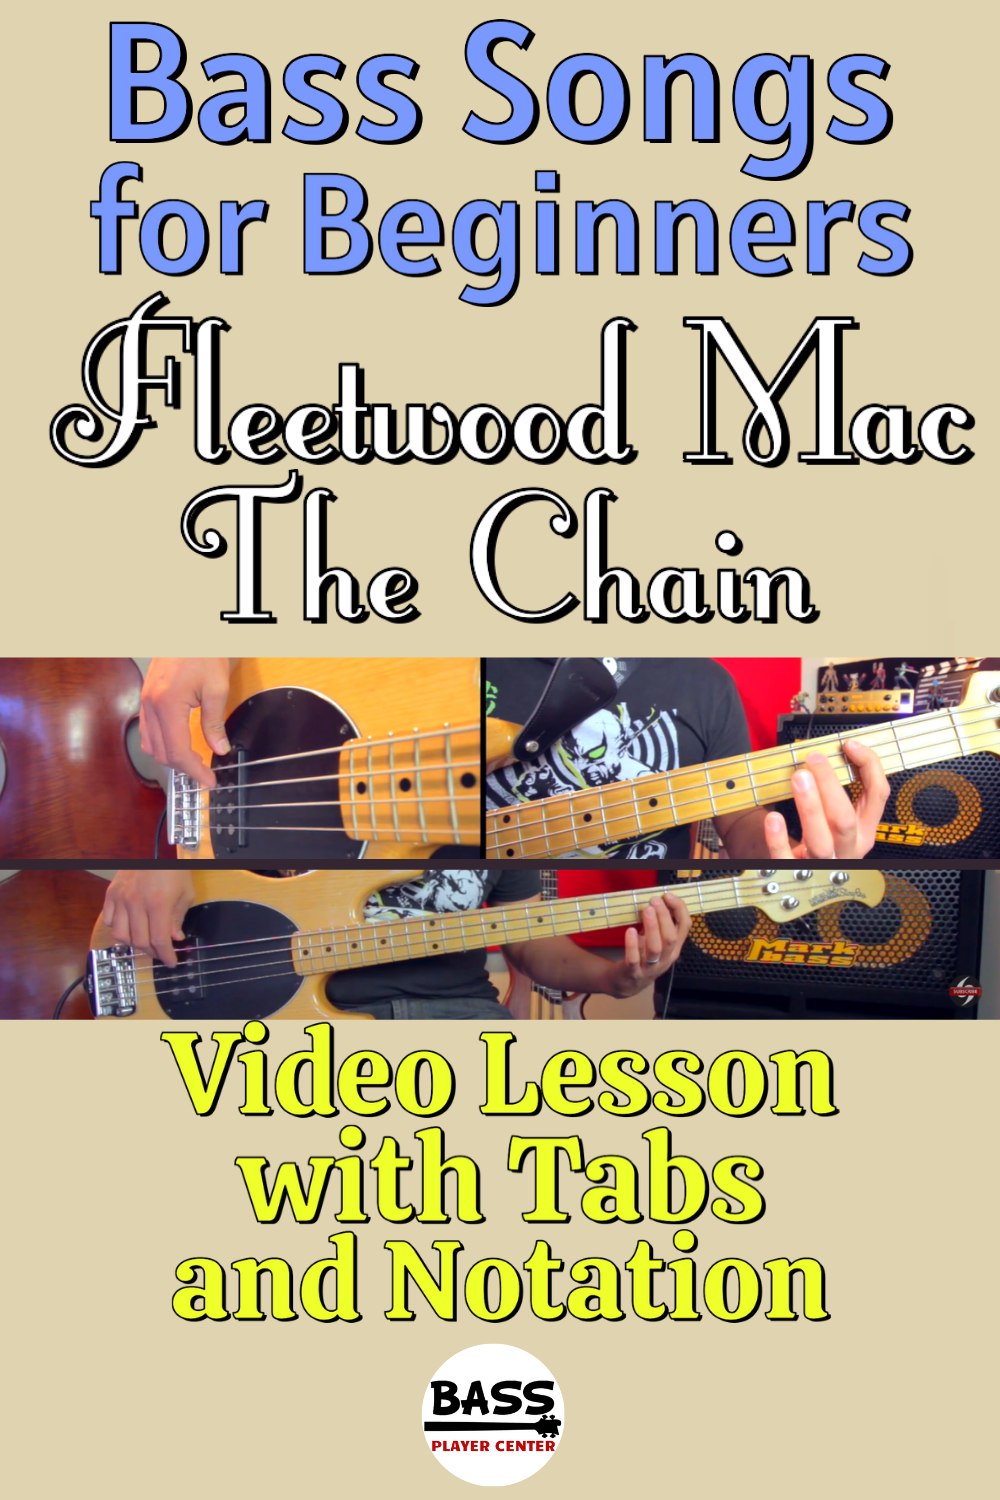 Bass Songs for Beginners The Chain Fleetwood Mac